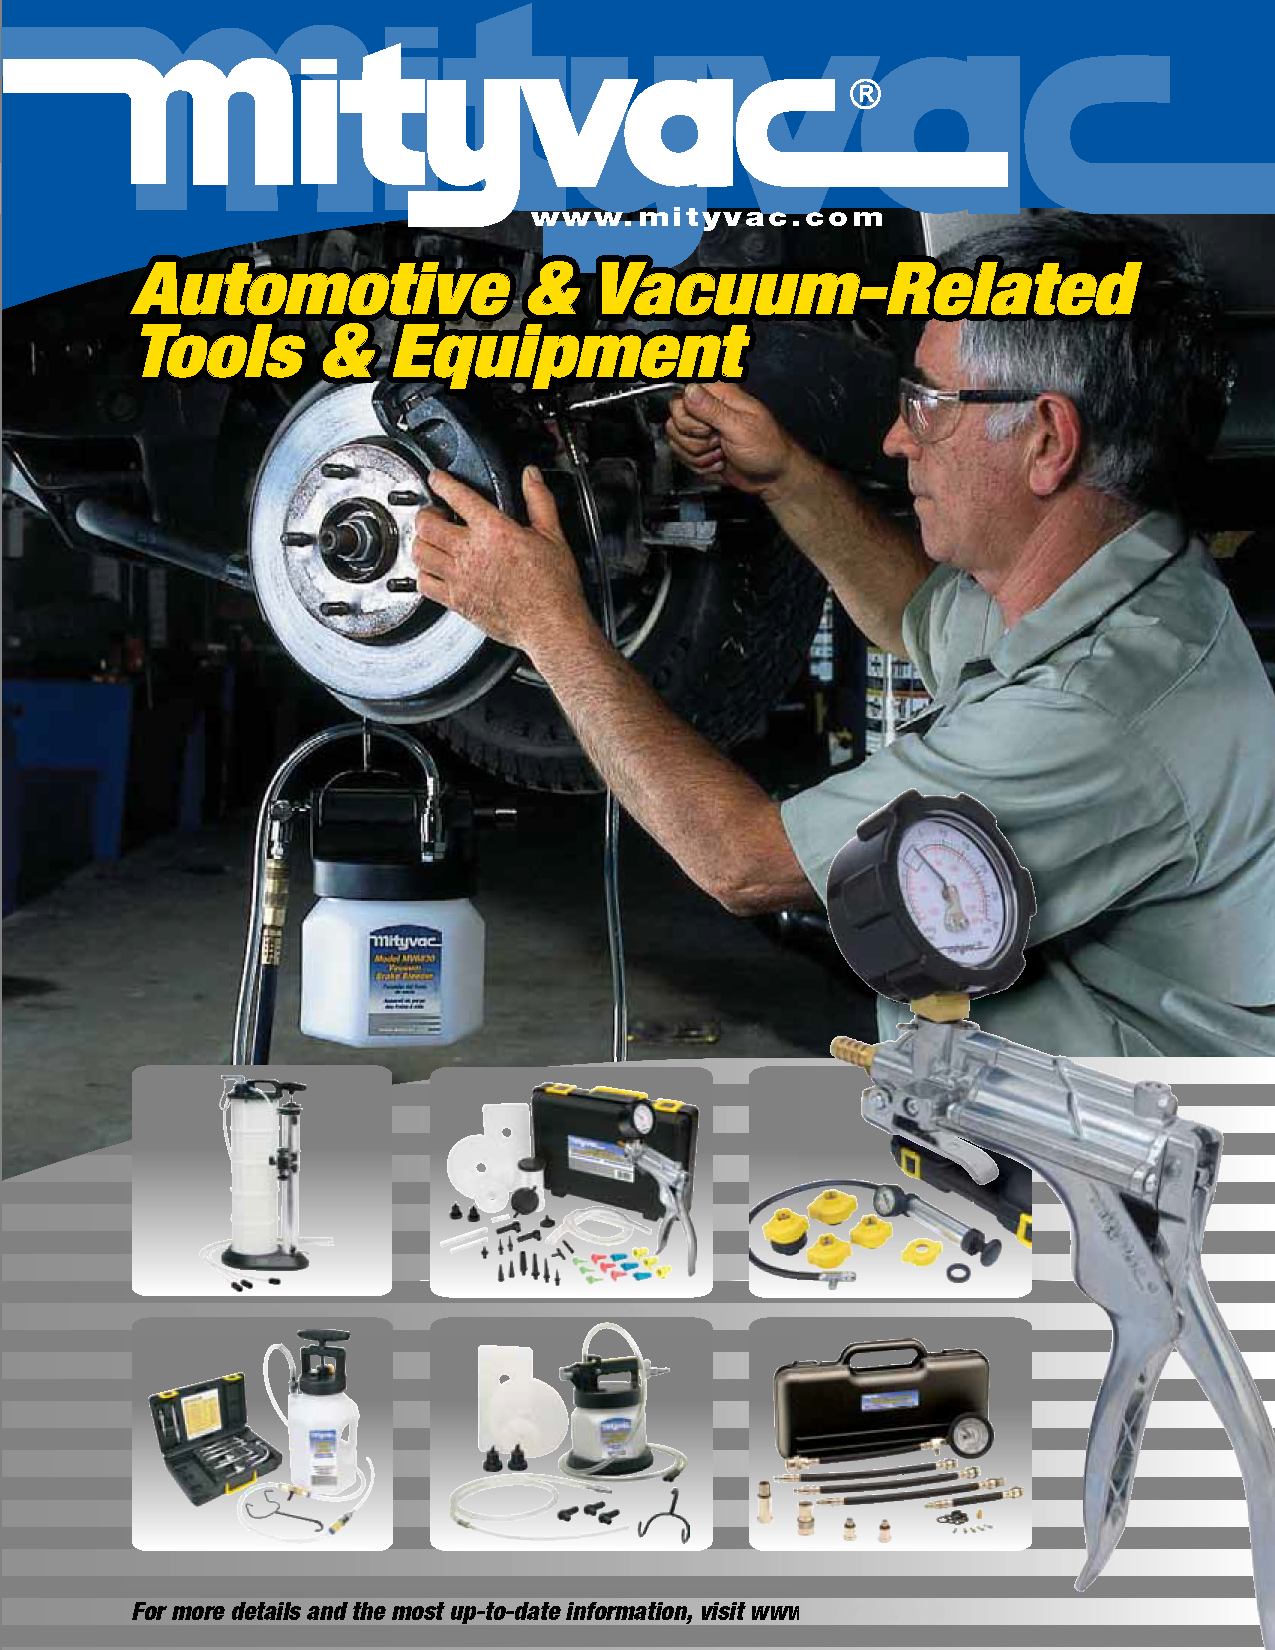 Automotive and Vacuum-Related Tools & Equipment